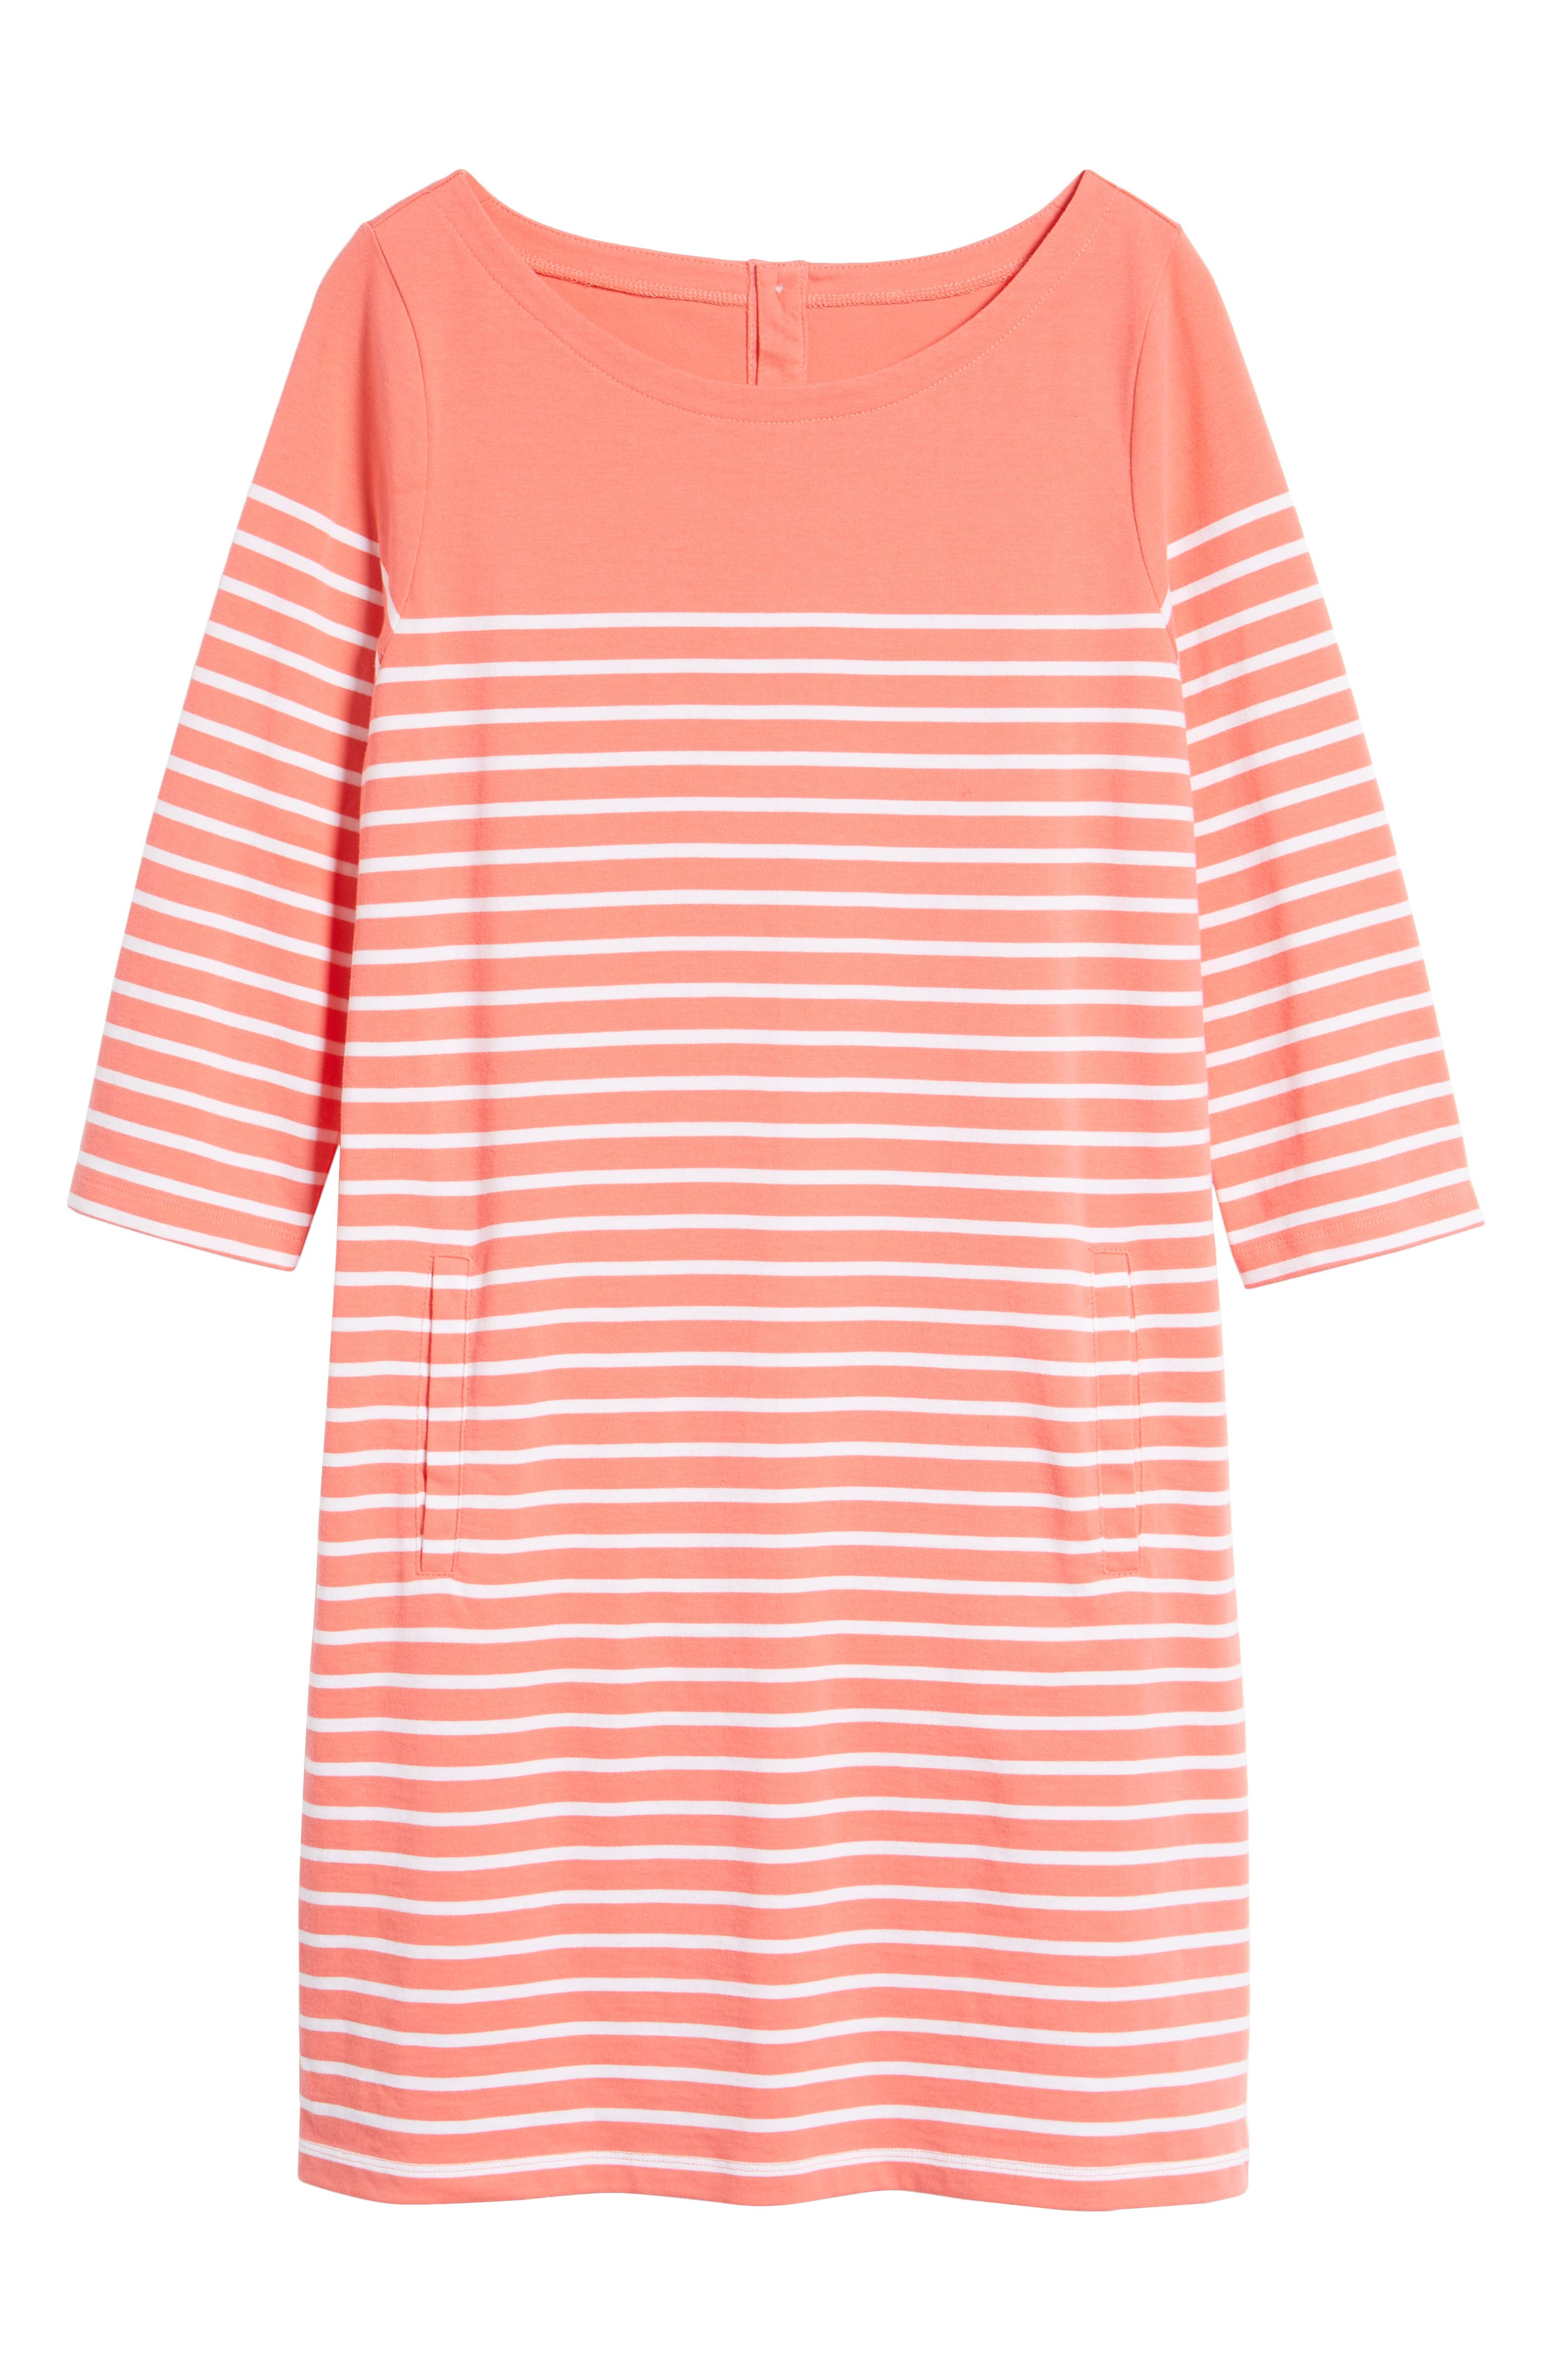 Stripe Cotton Knit Shift Dress,                             Alternate thumbnail 7, color,                             Coral- White Stripe